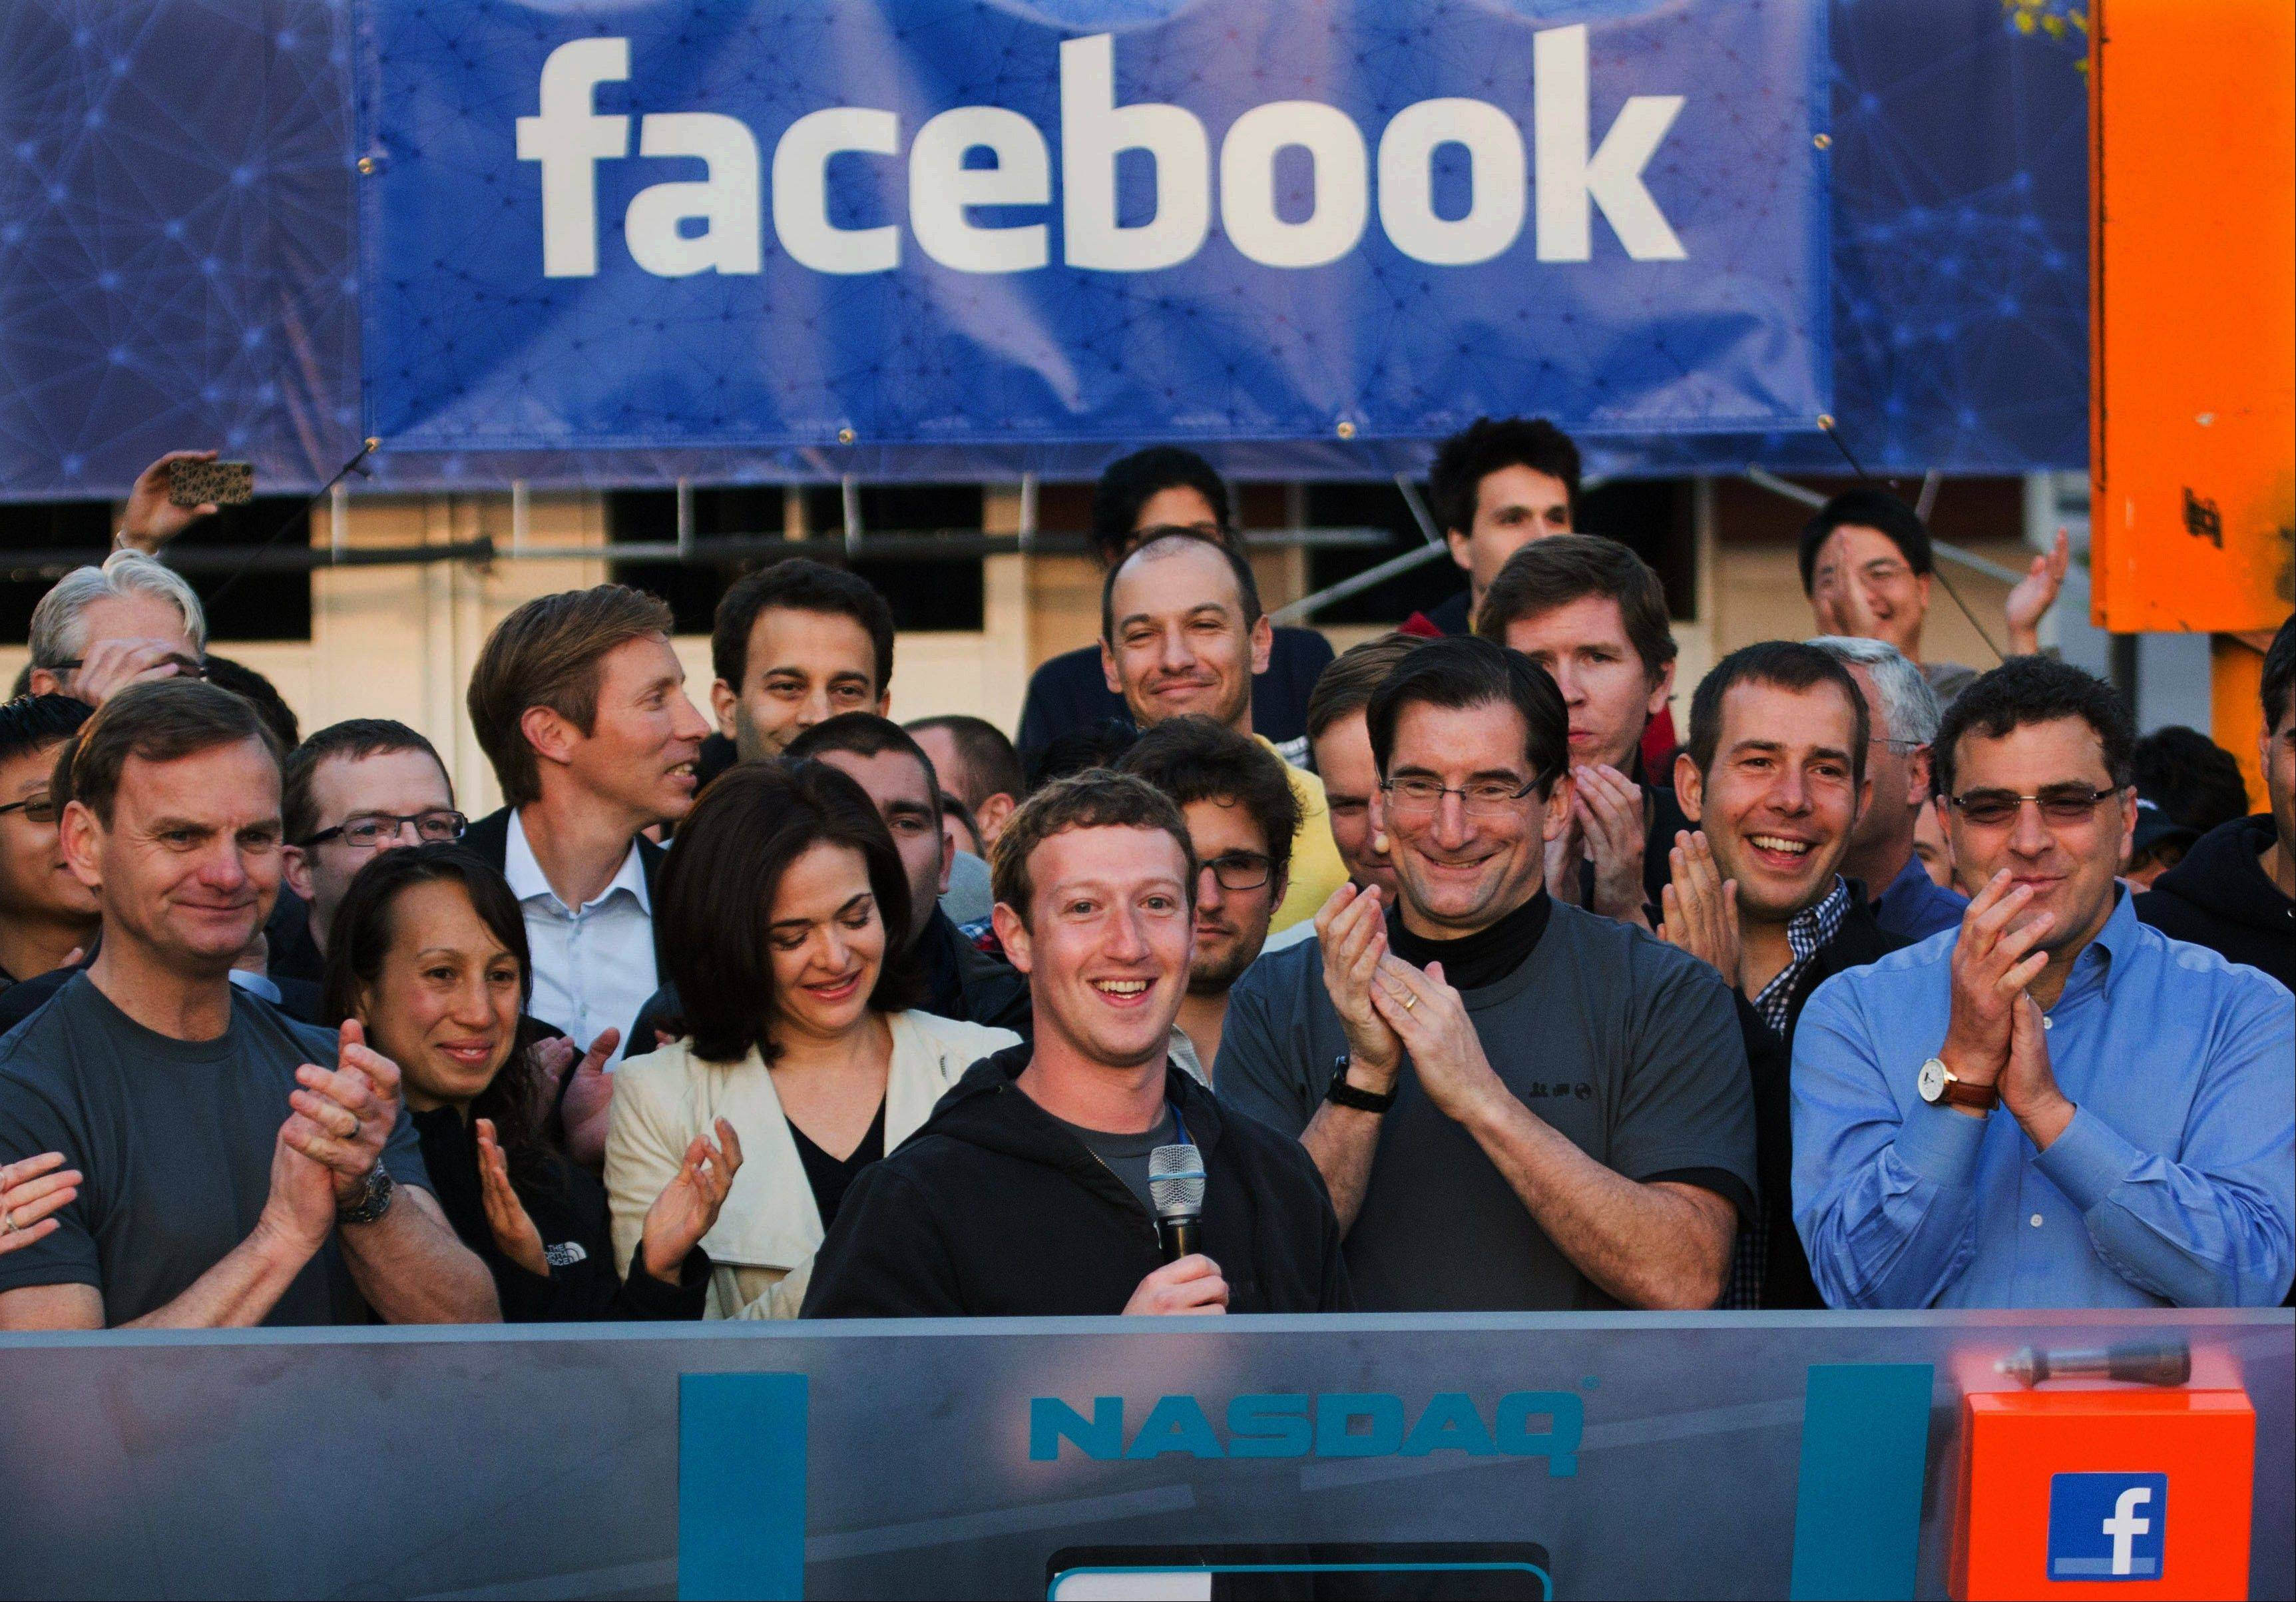 Facebook founder, Chairman and CEO Mark Zuckerberg, center, rings the Nasdaq opening bell from Facebook headquarters in Menlo Park, Calif., May 18. Facebook revenue from mobile display advertising is rising.